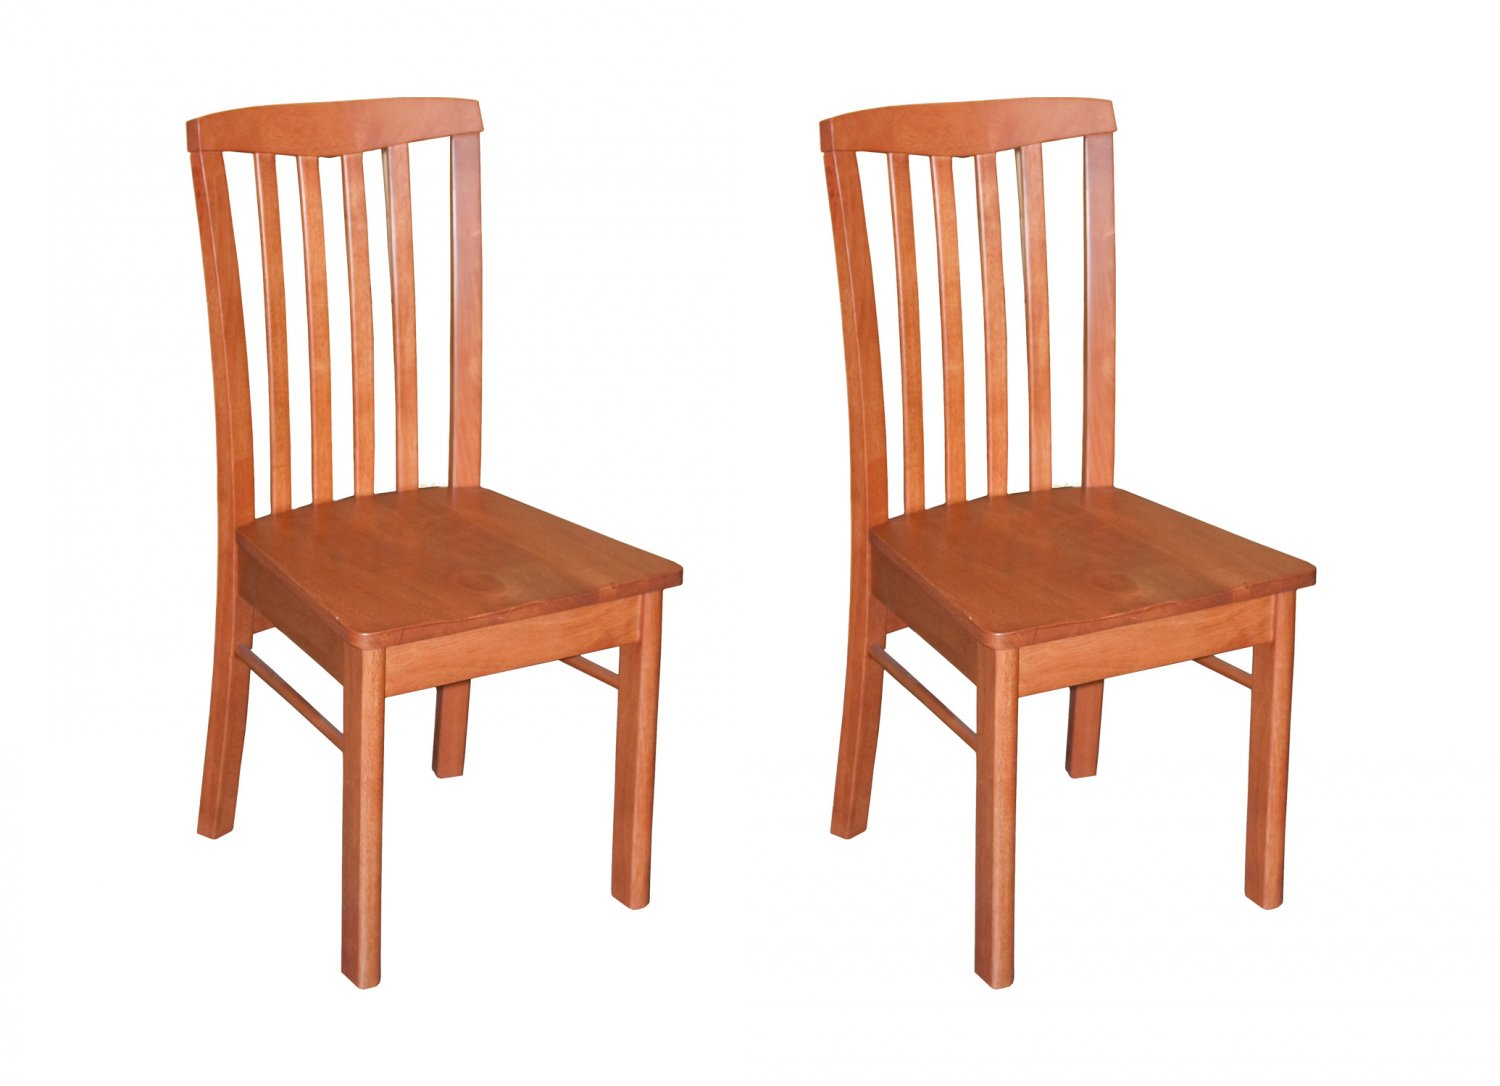 Set of 2 Hartland  dining room chairs with wood seat in Light Cherry finish.